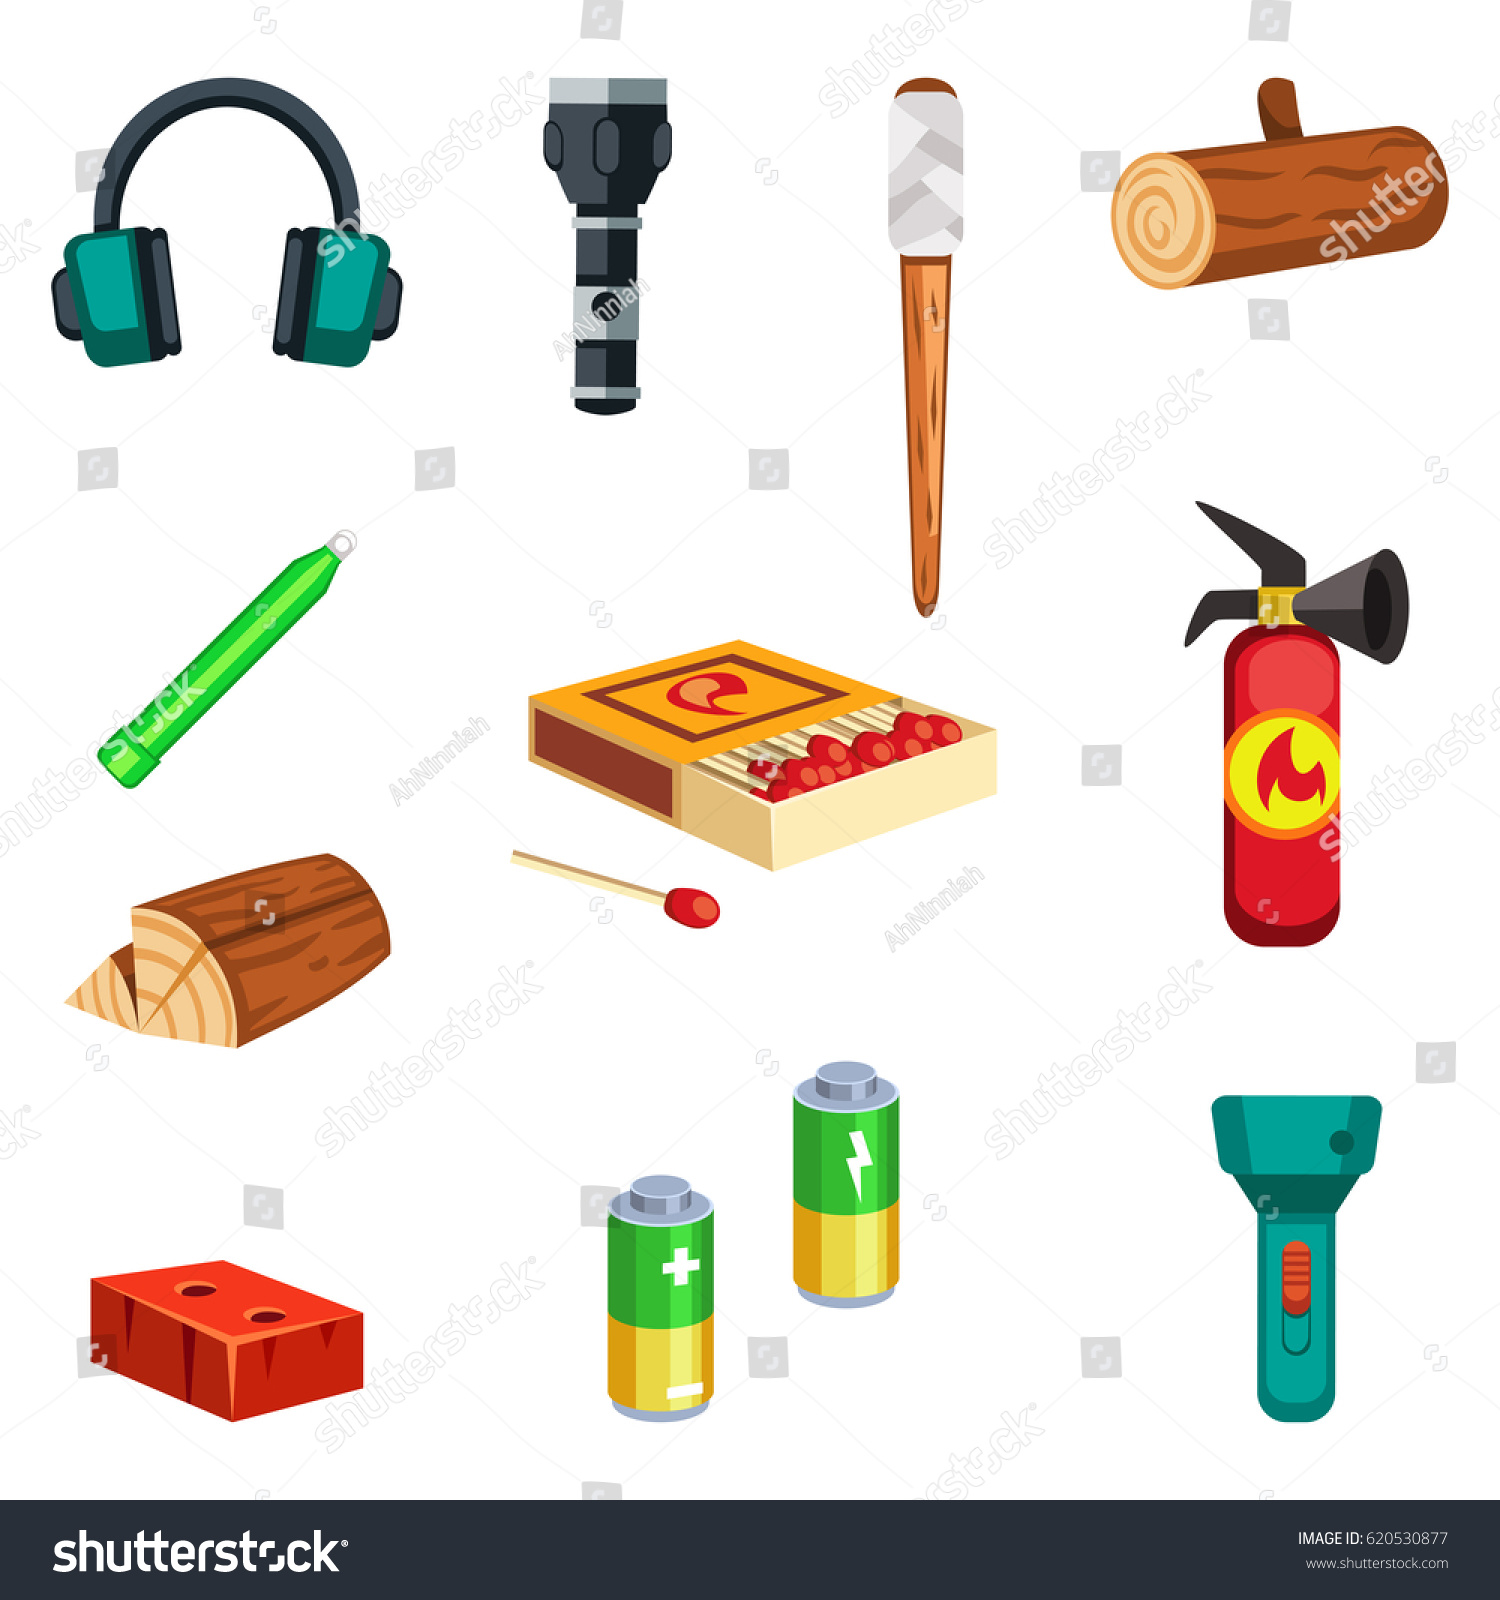 Set of cartoon survival game items lighting equipment  sc 1 st  Shutterstock & Set Cartoon Survival Game Items Lighting Stock Vector 620530877 ... azcodes.com